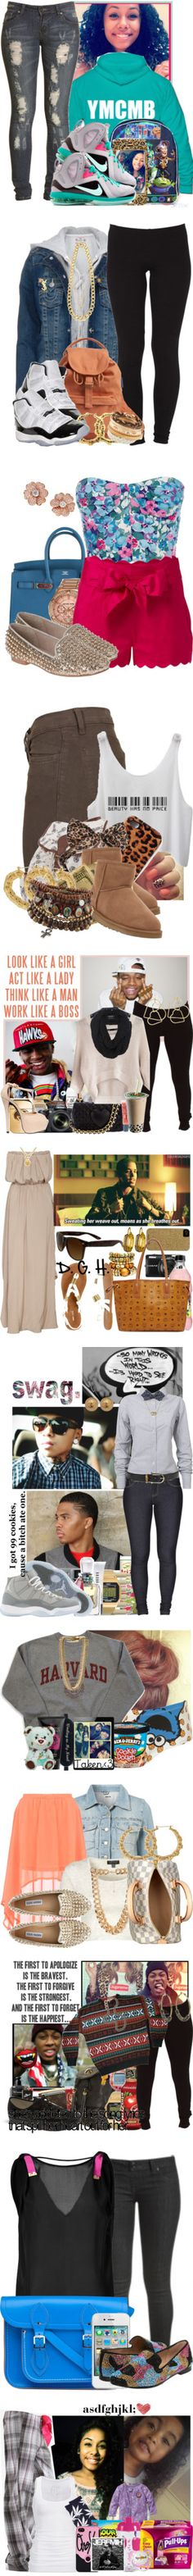 """be dope act dope stay dope"" by indigow99 ❤ liked on Polyvore"